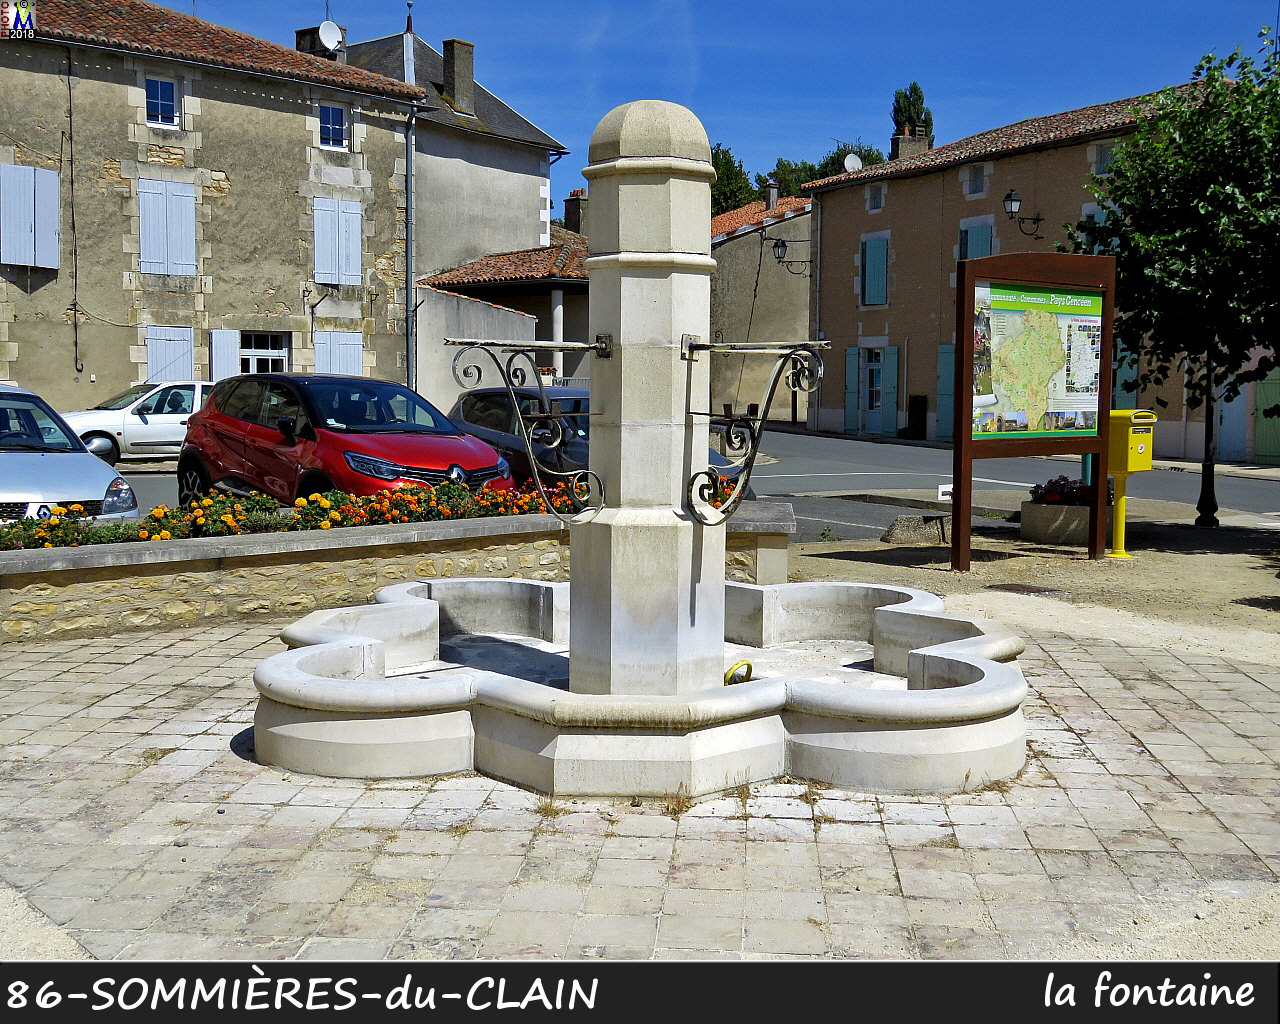 86SOMMIERES-CLAIN_fontaine_1000.jpg